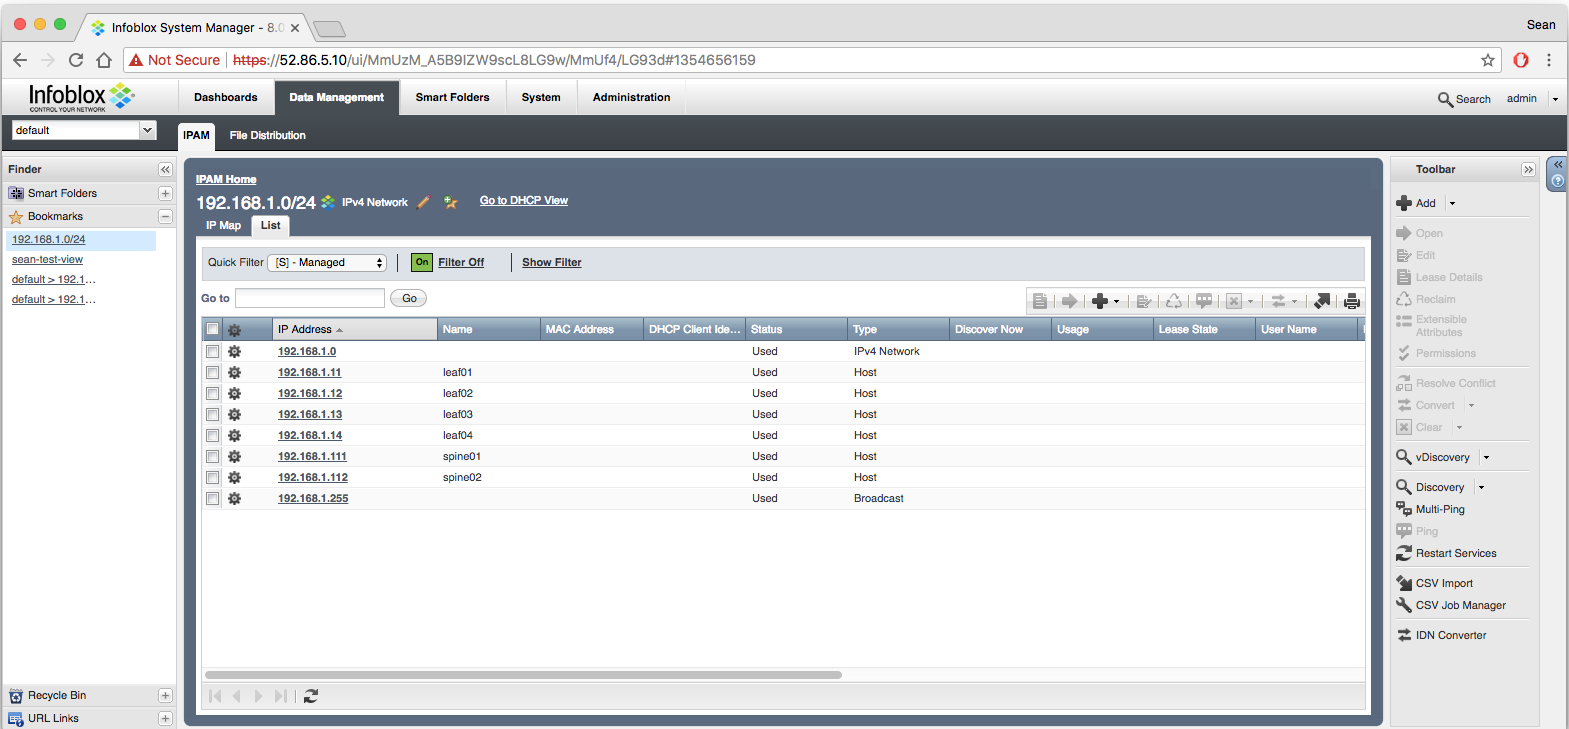 Ansible-Infoblox-Image-2